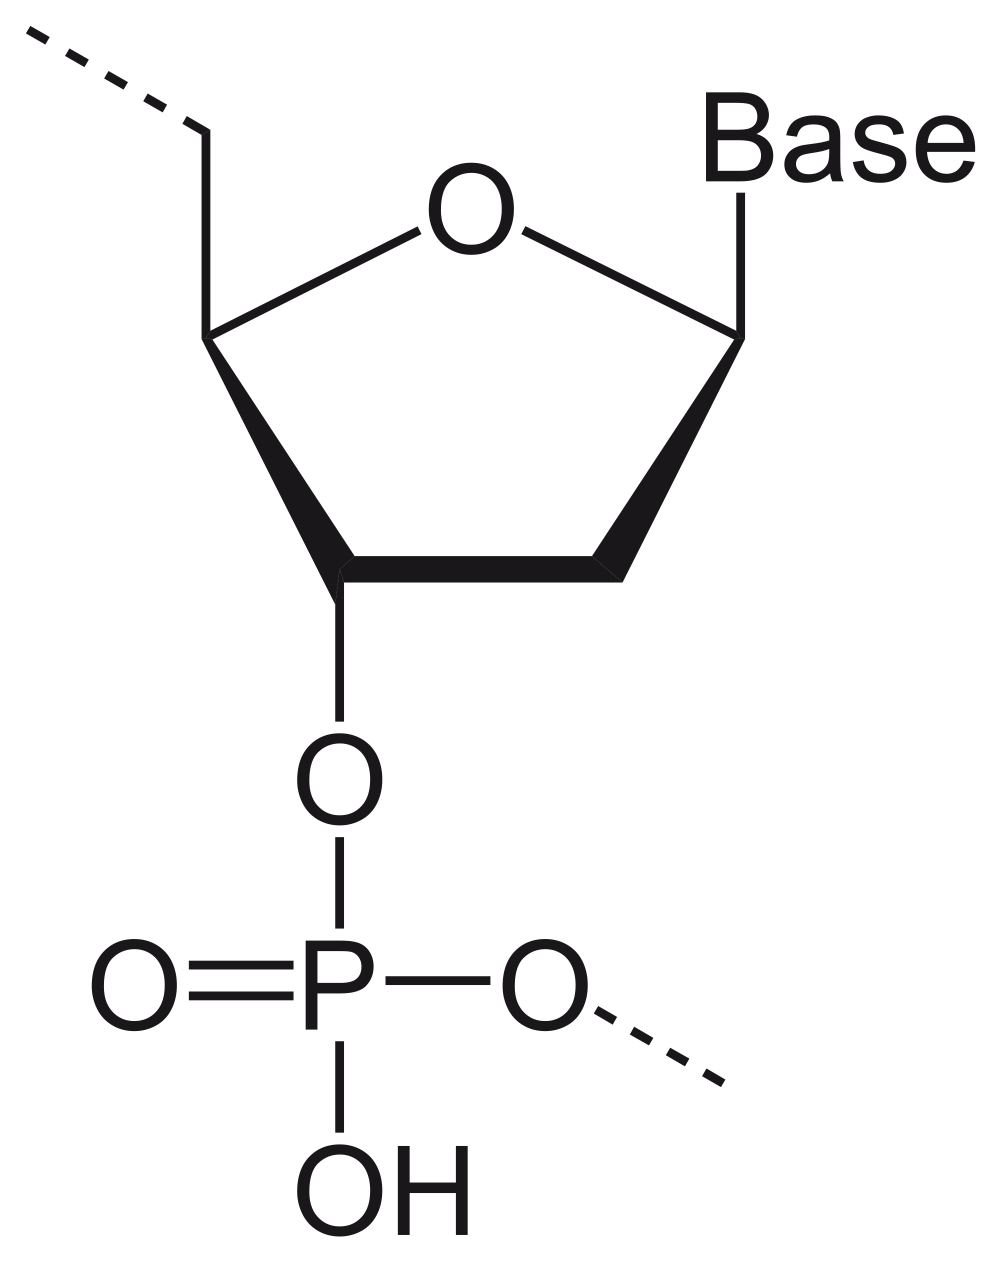 medium resolution of 2000x2528 dna drawing drawing labeled for free download dna drawing labeled